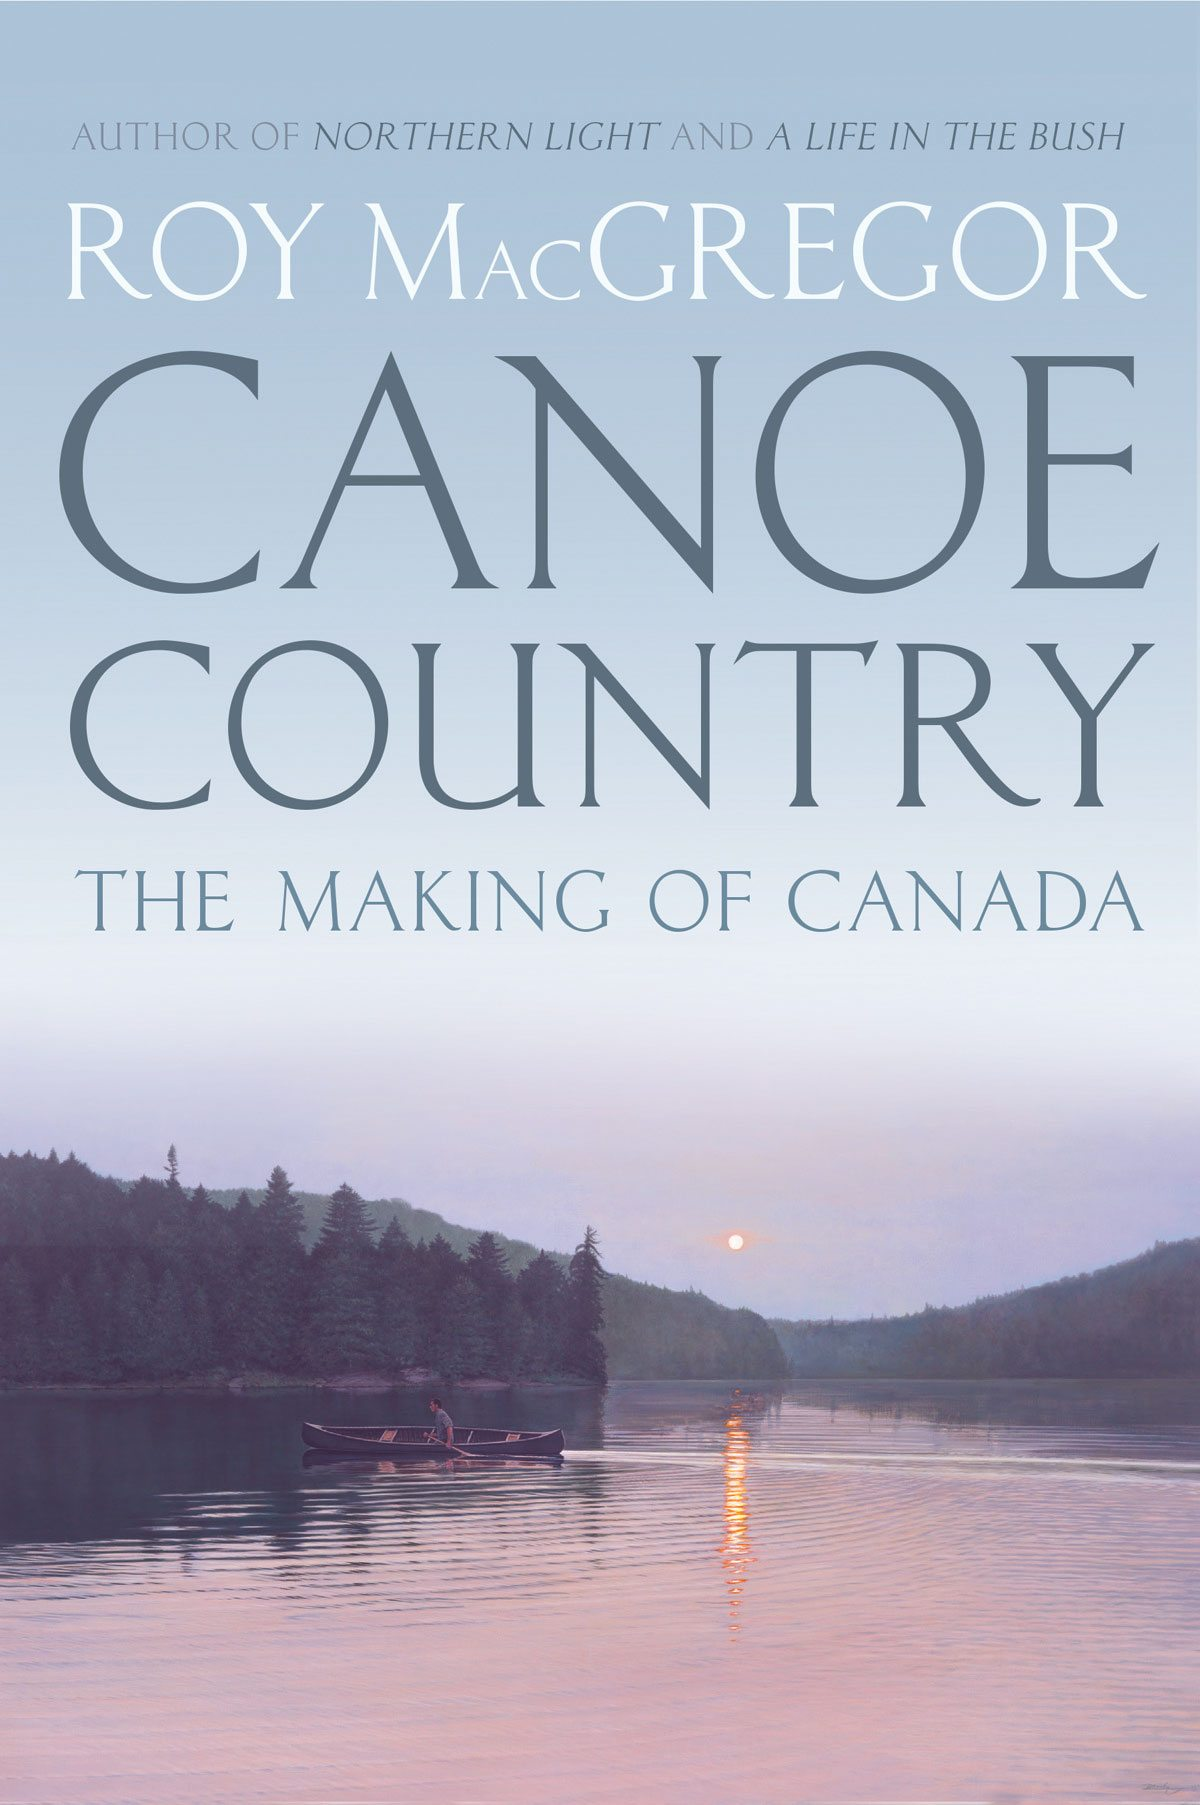 CanoeCountry